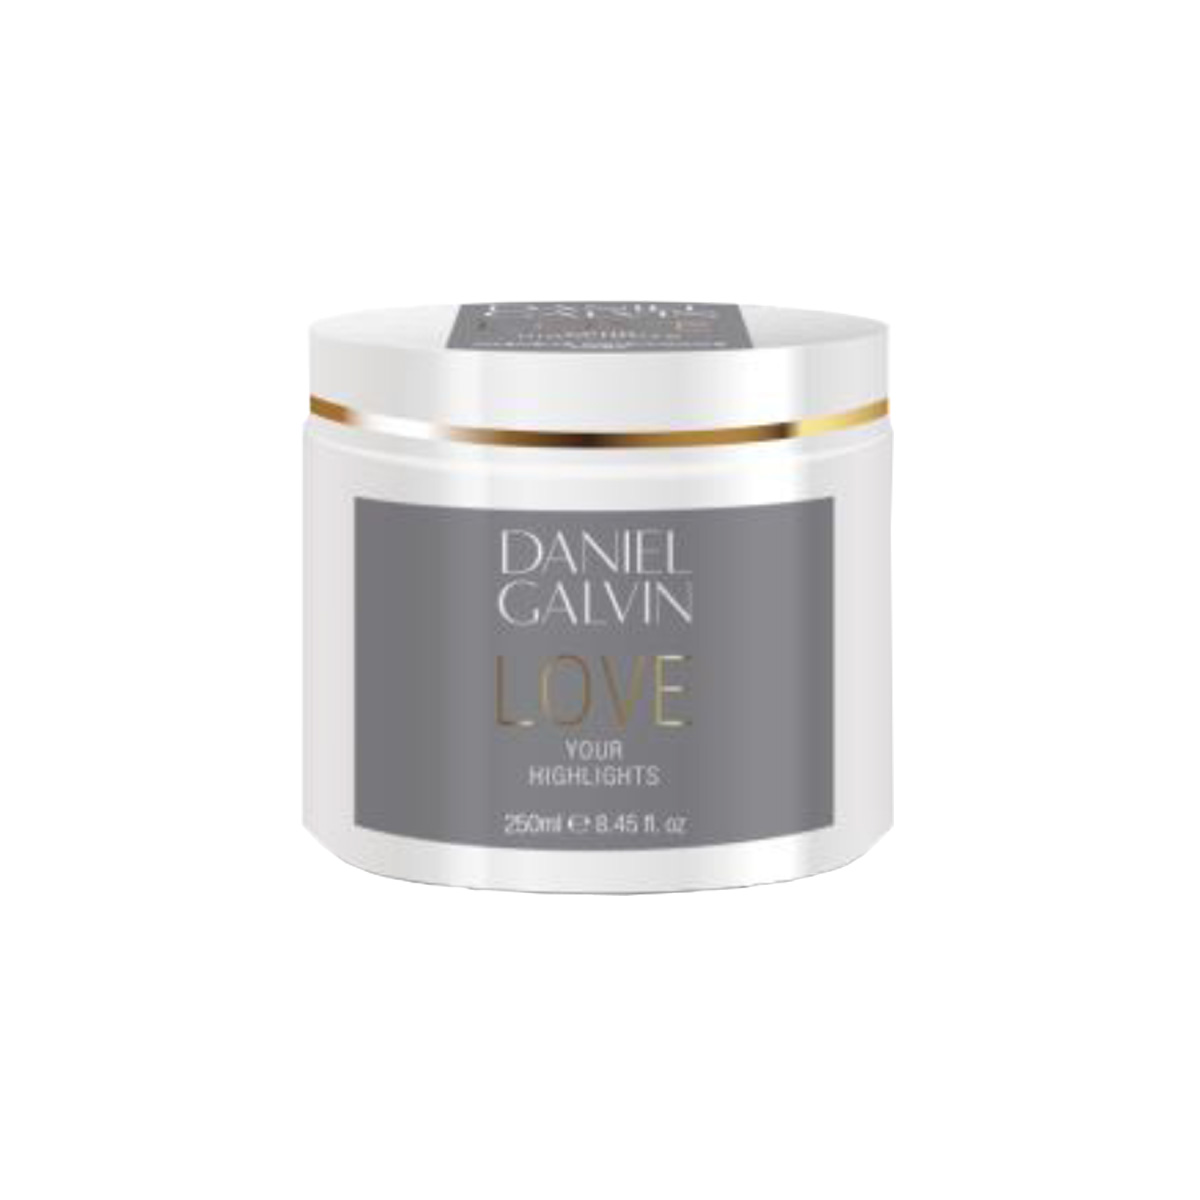 Daniel Galvin Love Your Highlights Intensive Conditioning Treatment